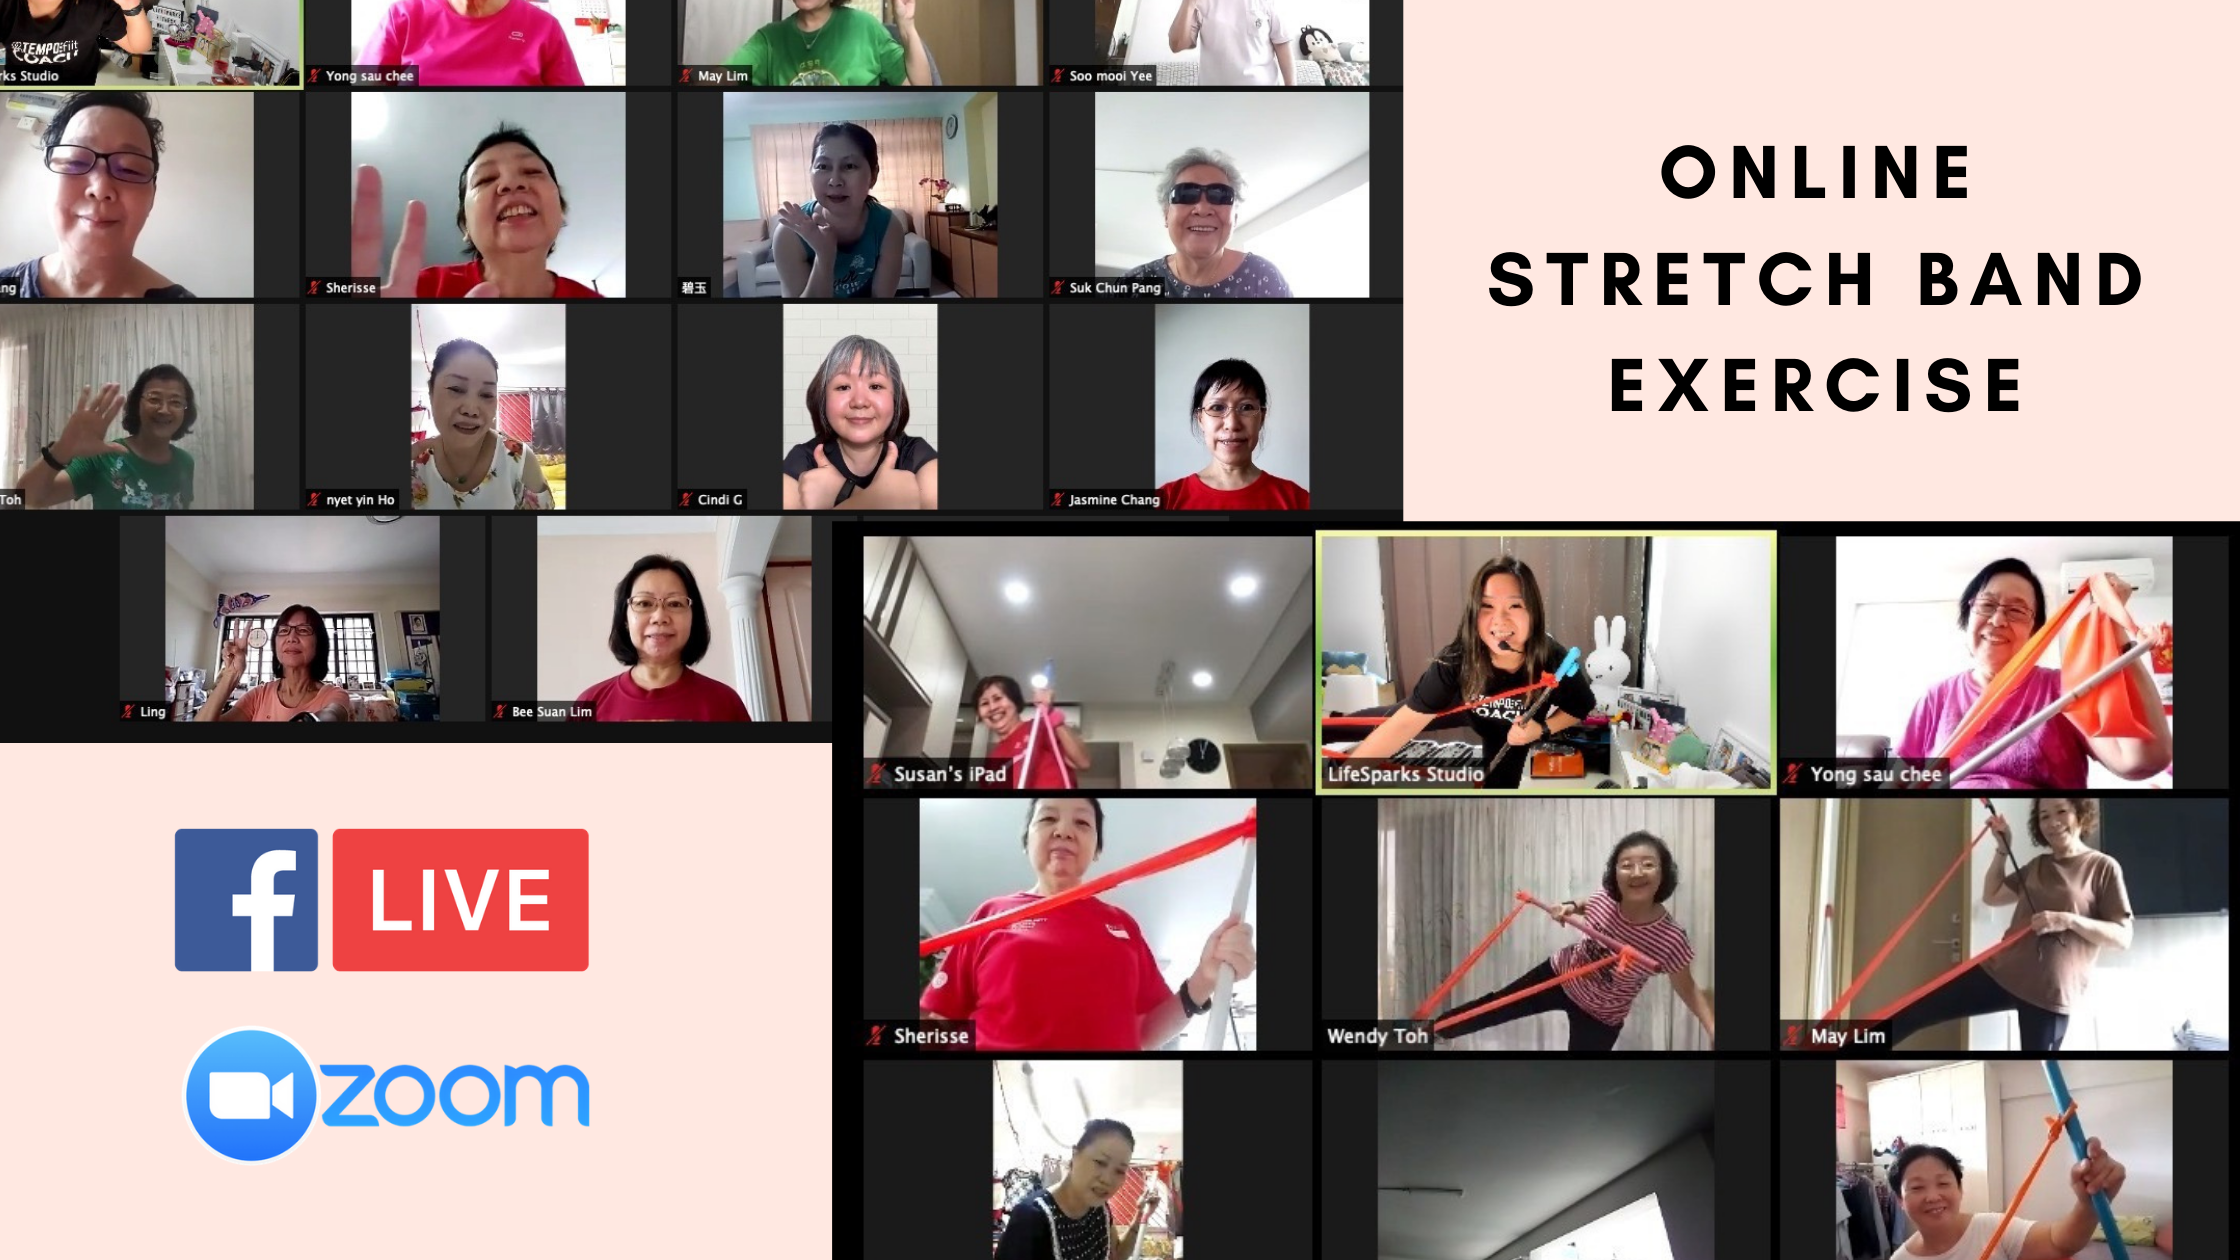 Online Stretch Band Exercise